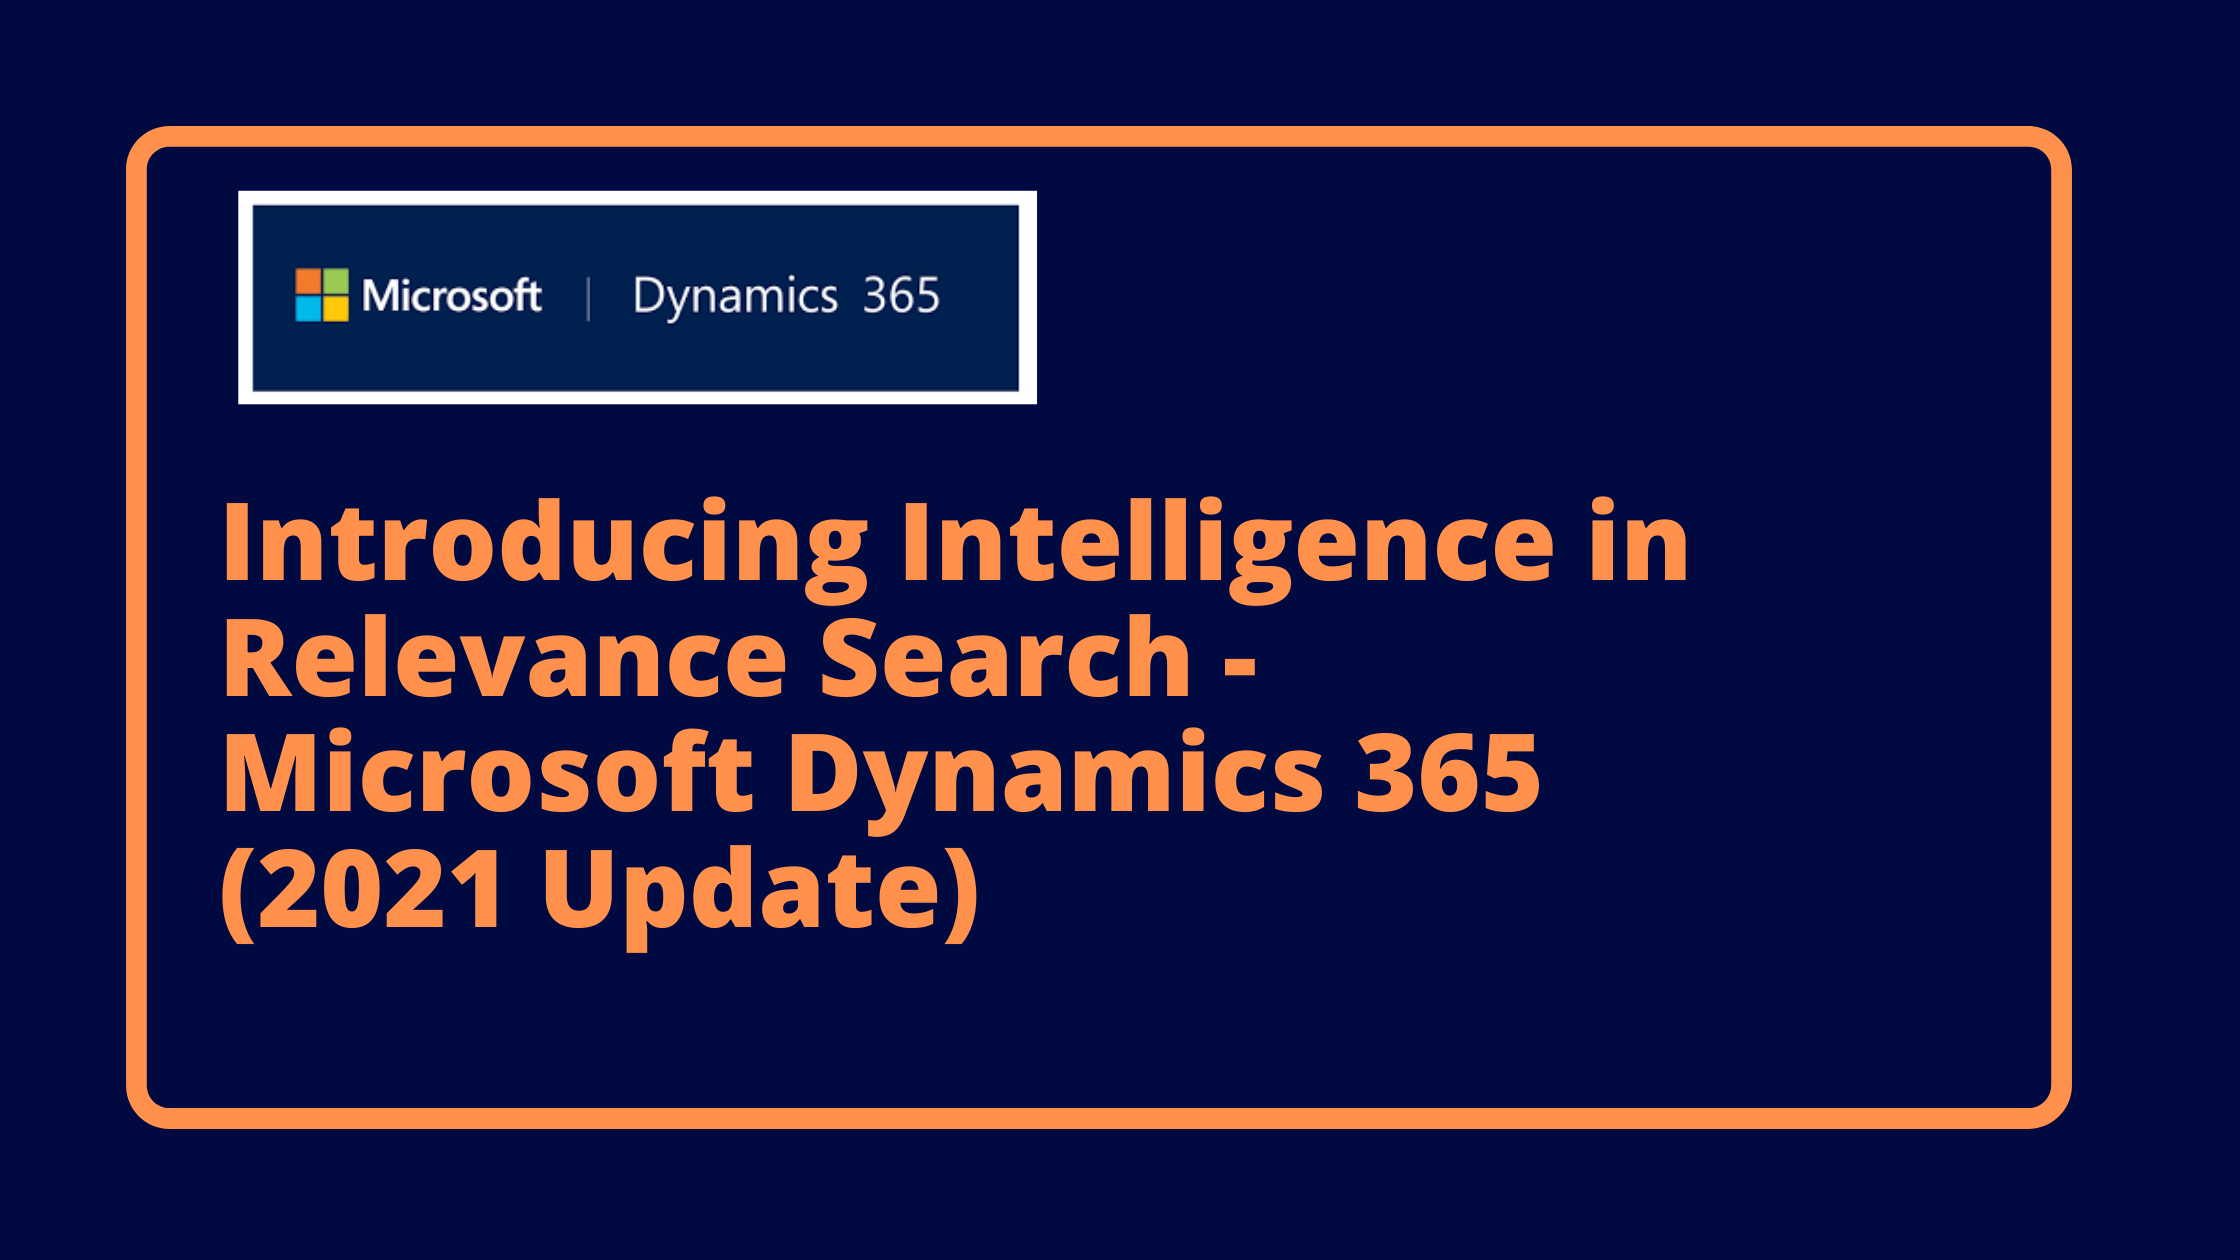 Introducing Intelligence in Relevance search- Microsoft Dynamics 365 (2021 Update)